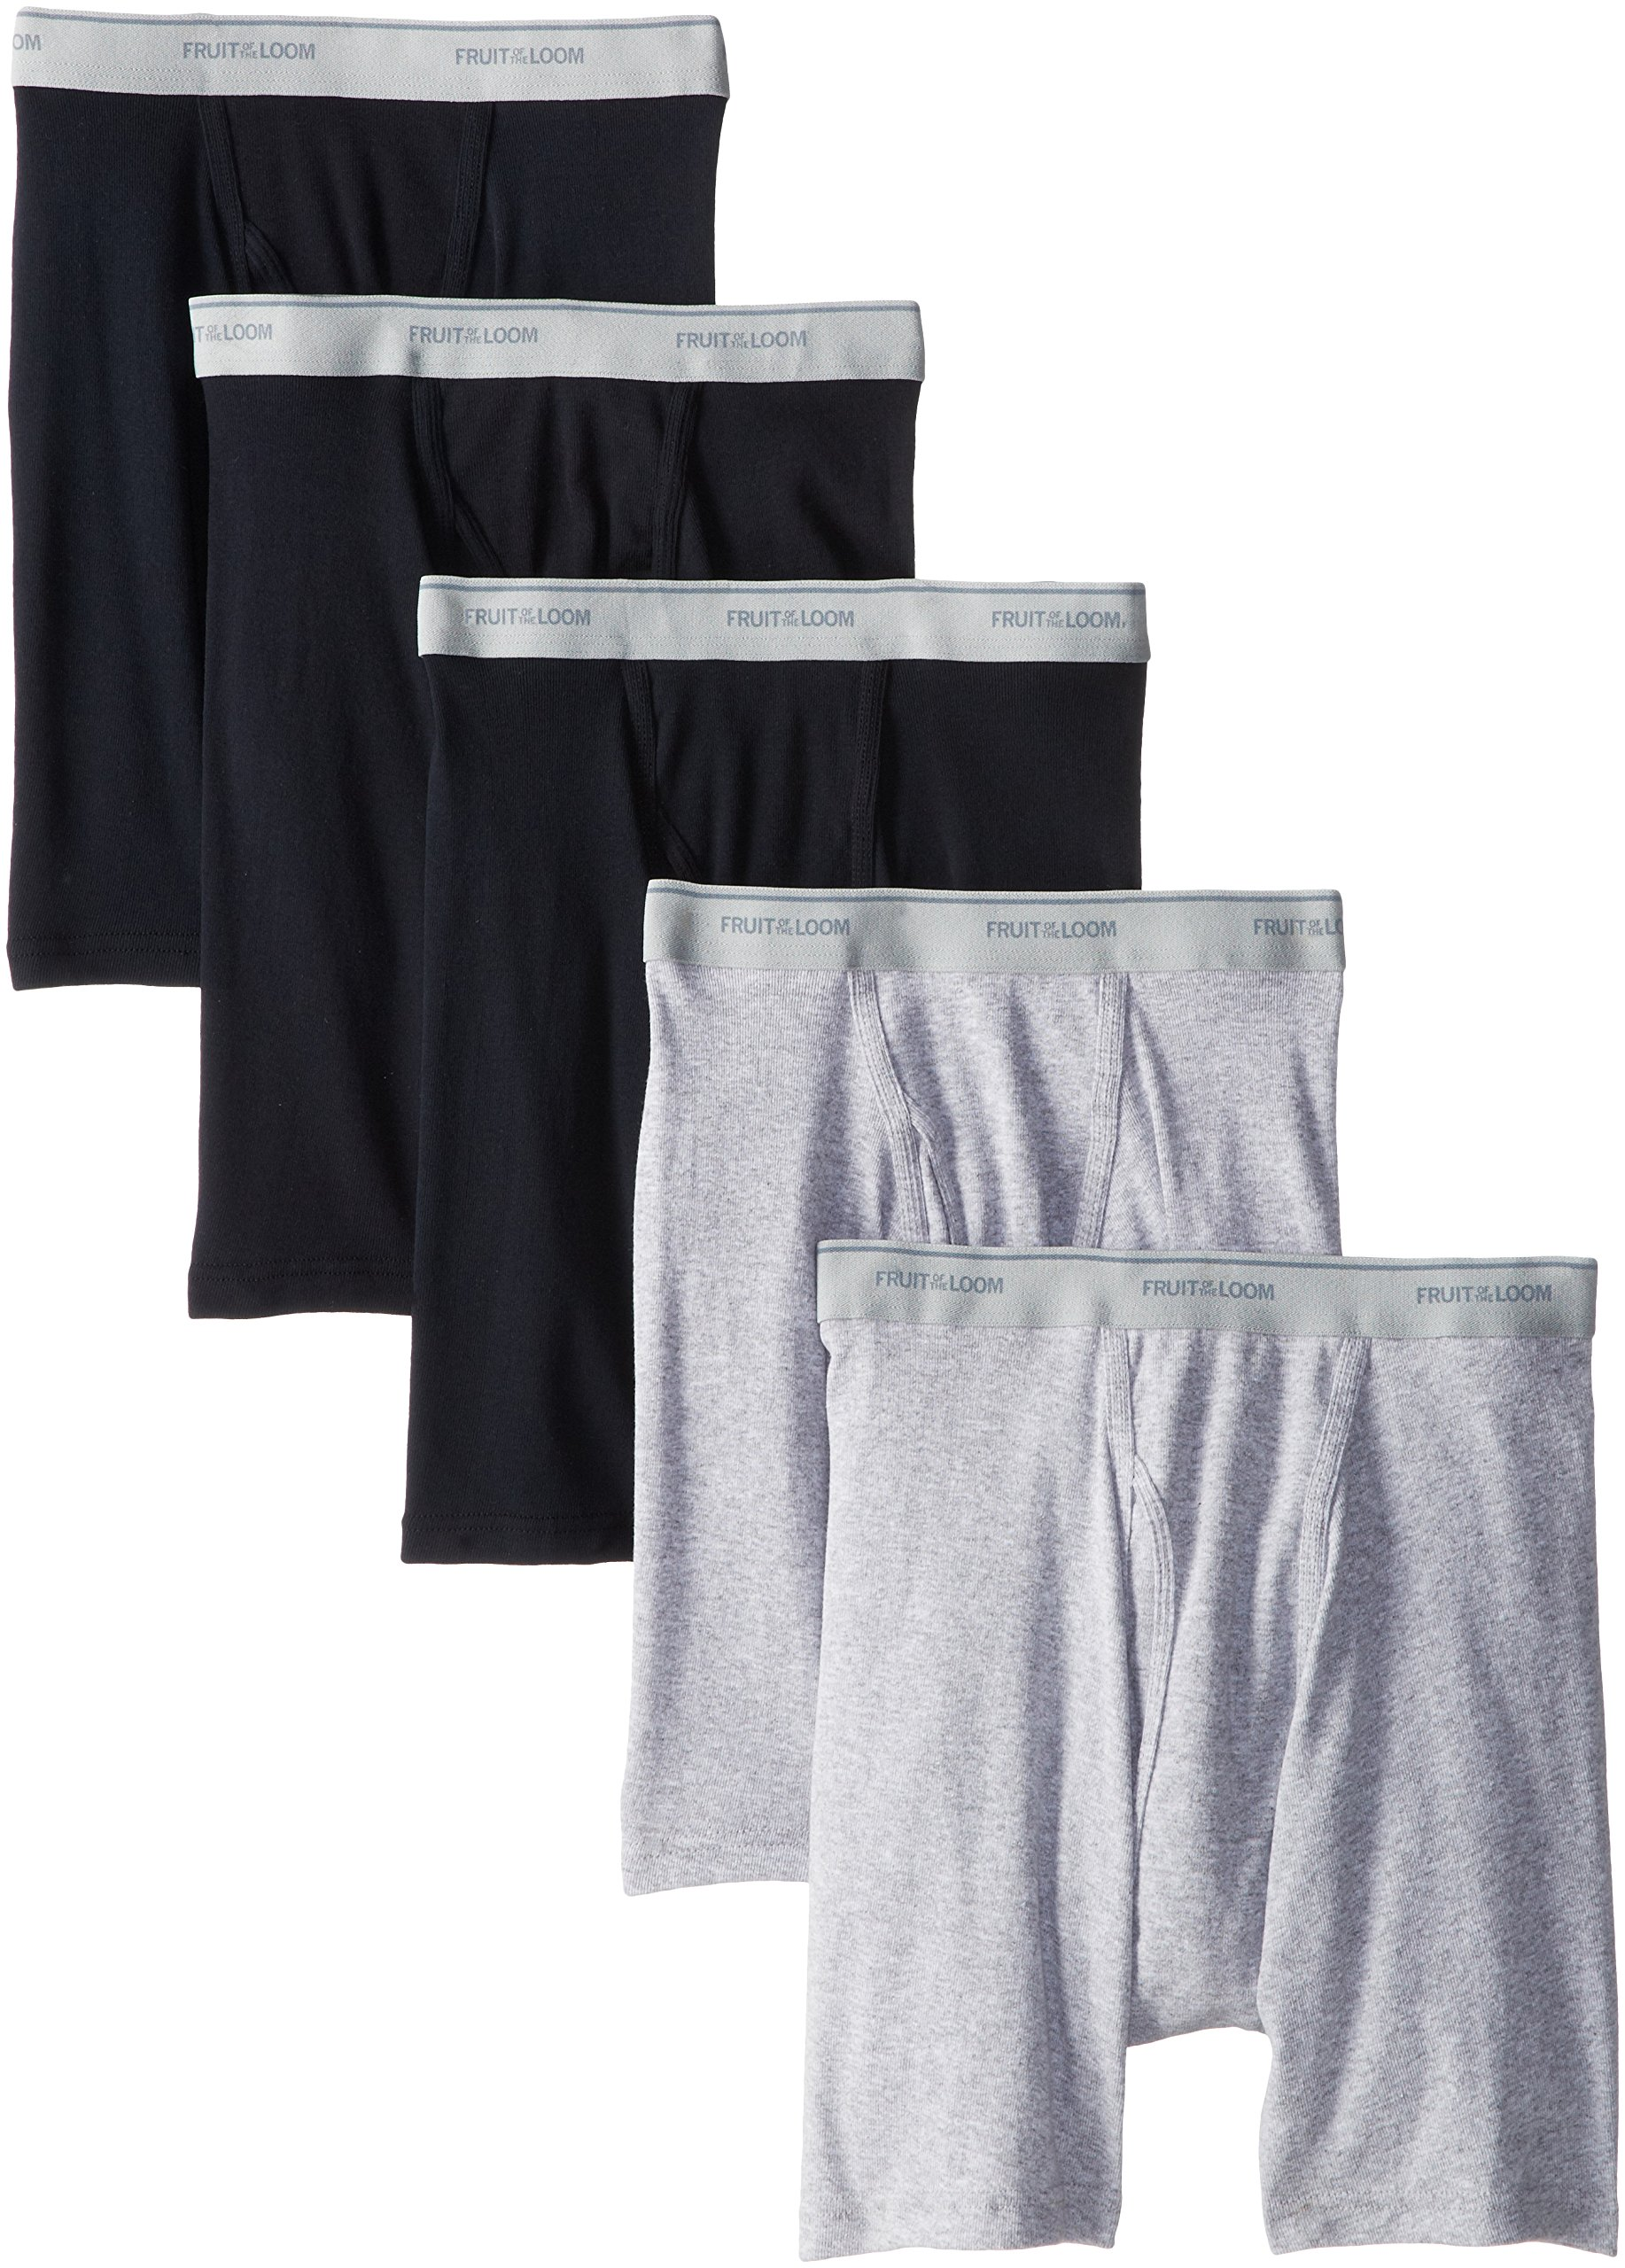 Fruit of the Loom Men's Boxer Brief, Black/Gray, Large(Pack of 5)